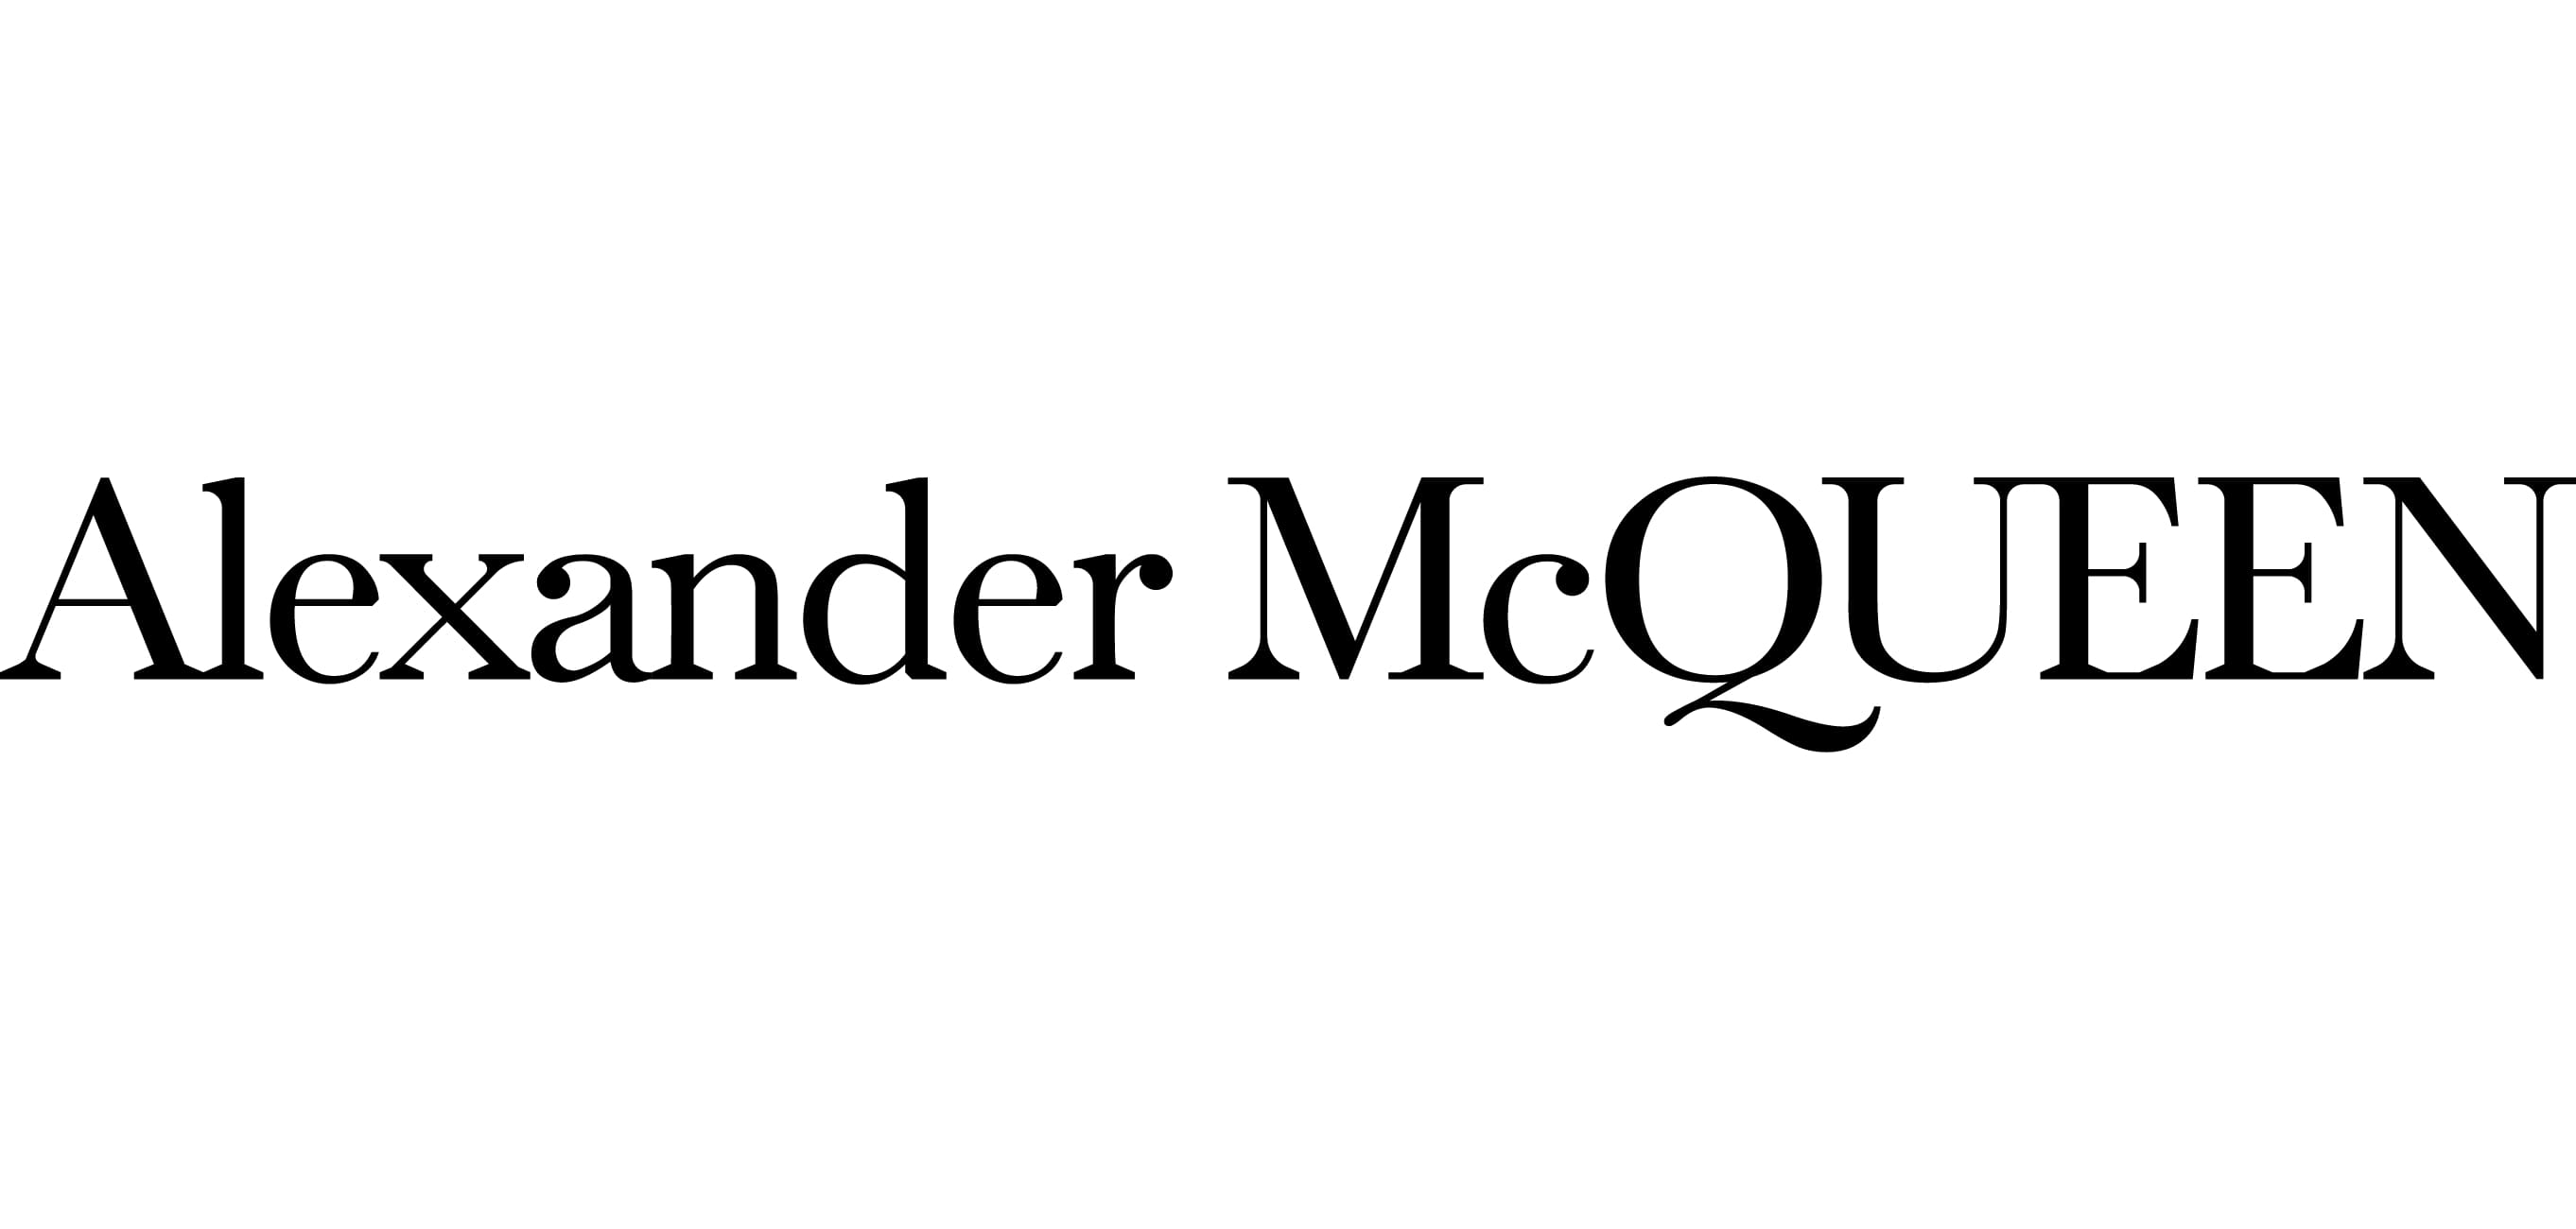 Alexander McQueen logo and symbol, meaning, history, PNG